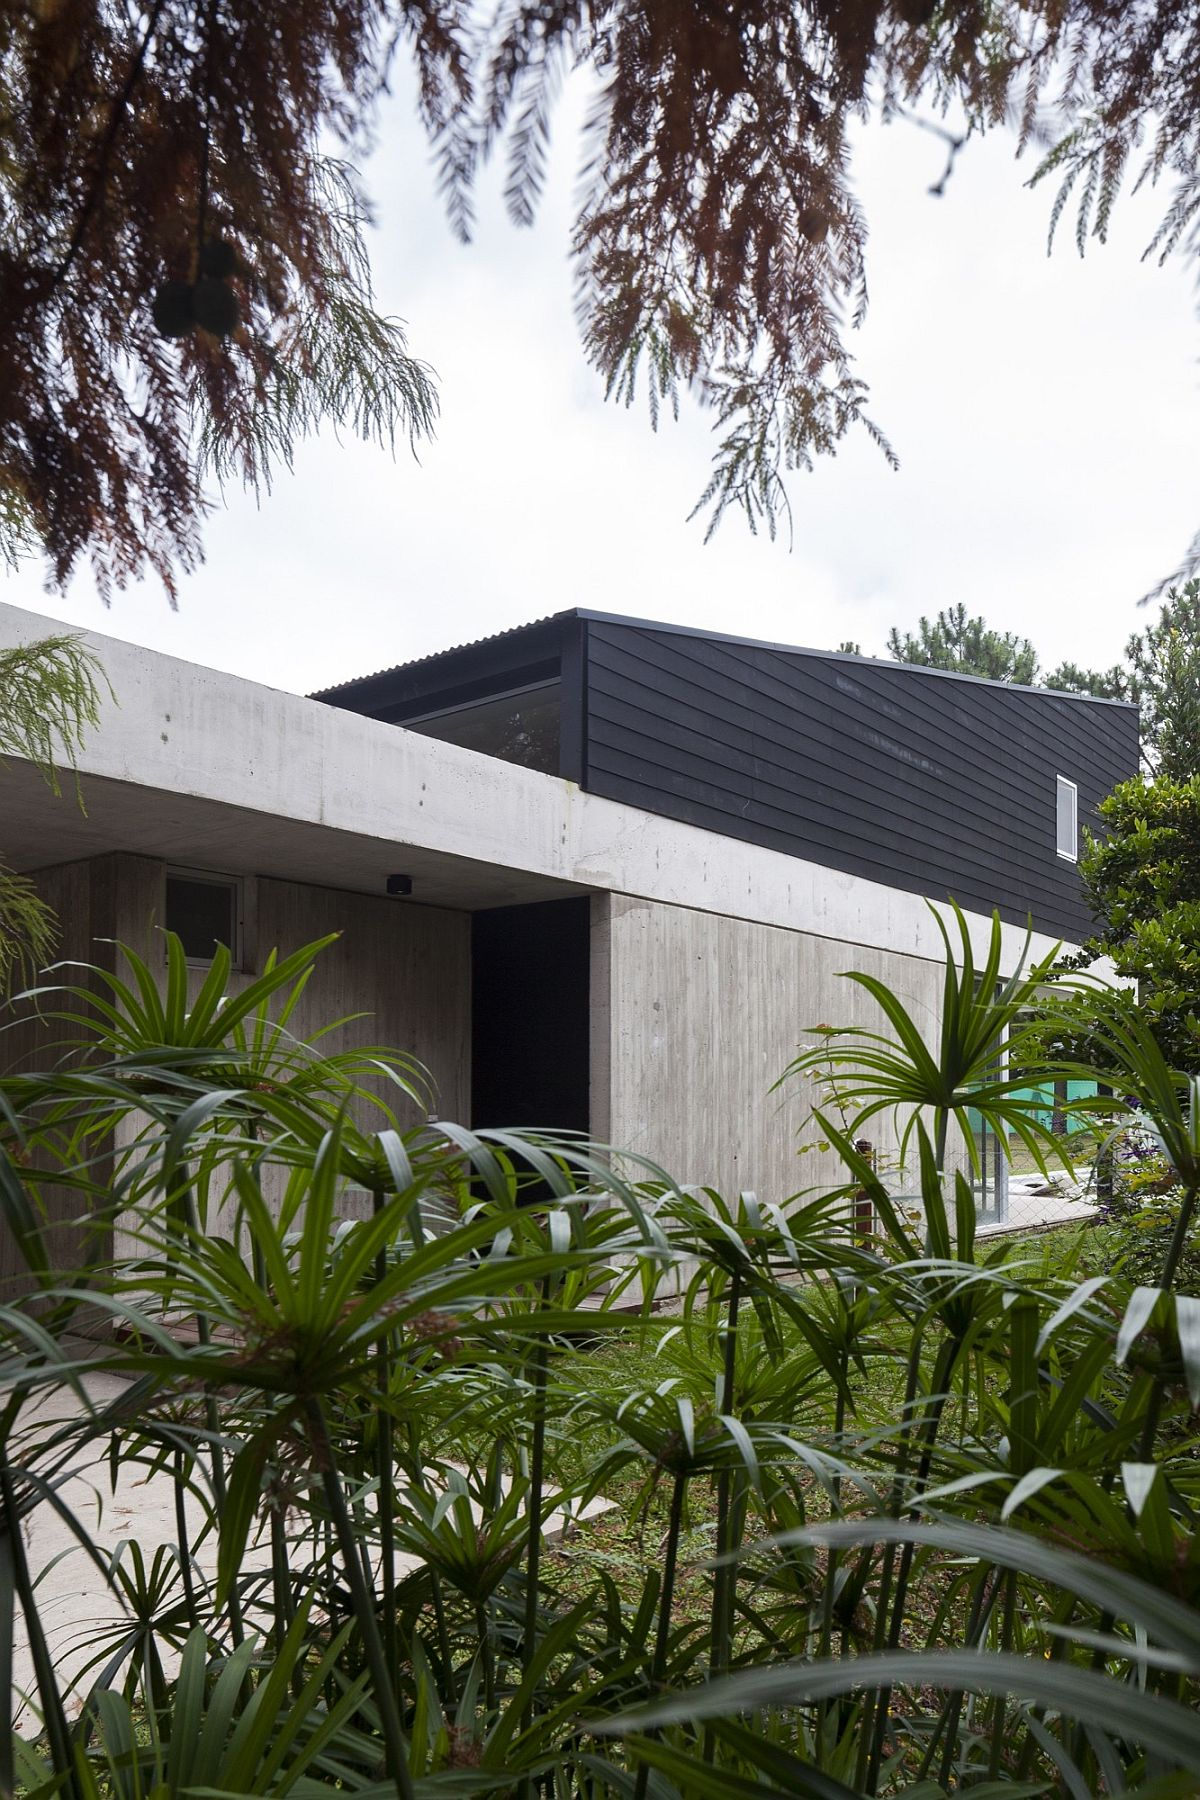 House DV by Colle-Croce in Argentina